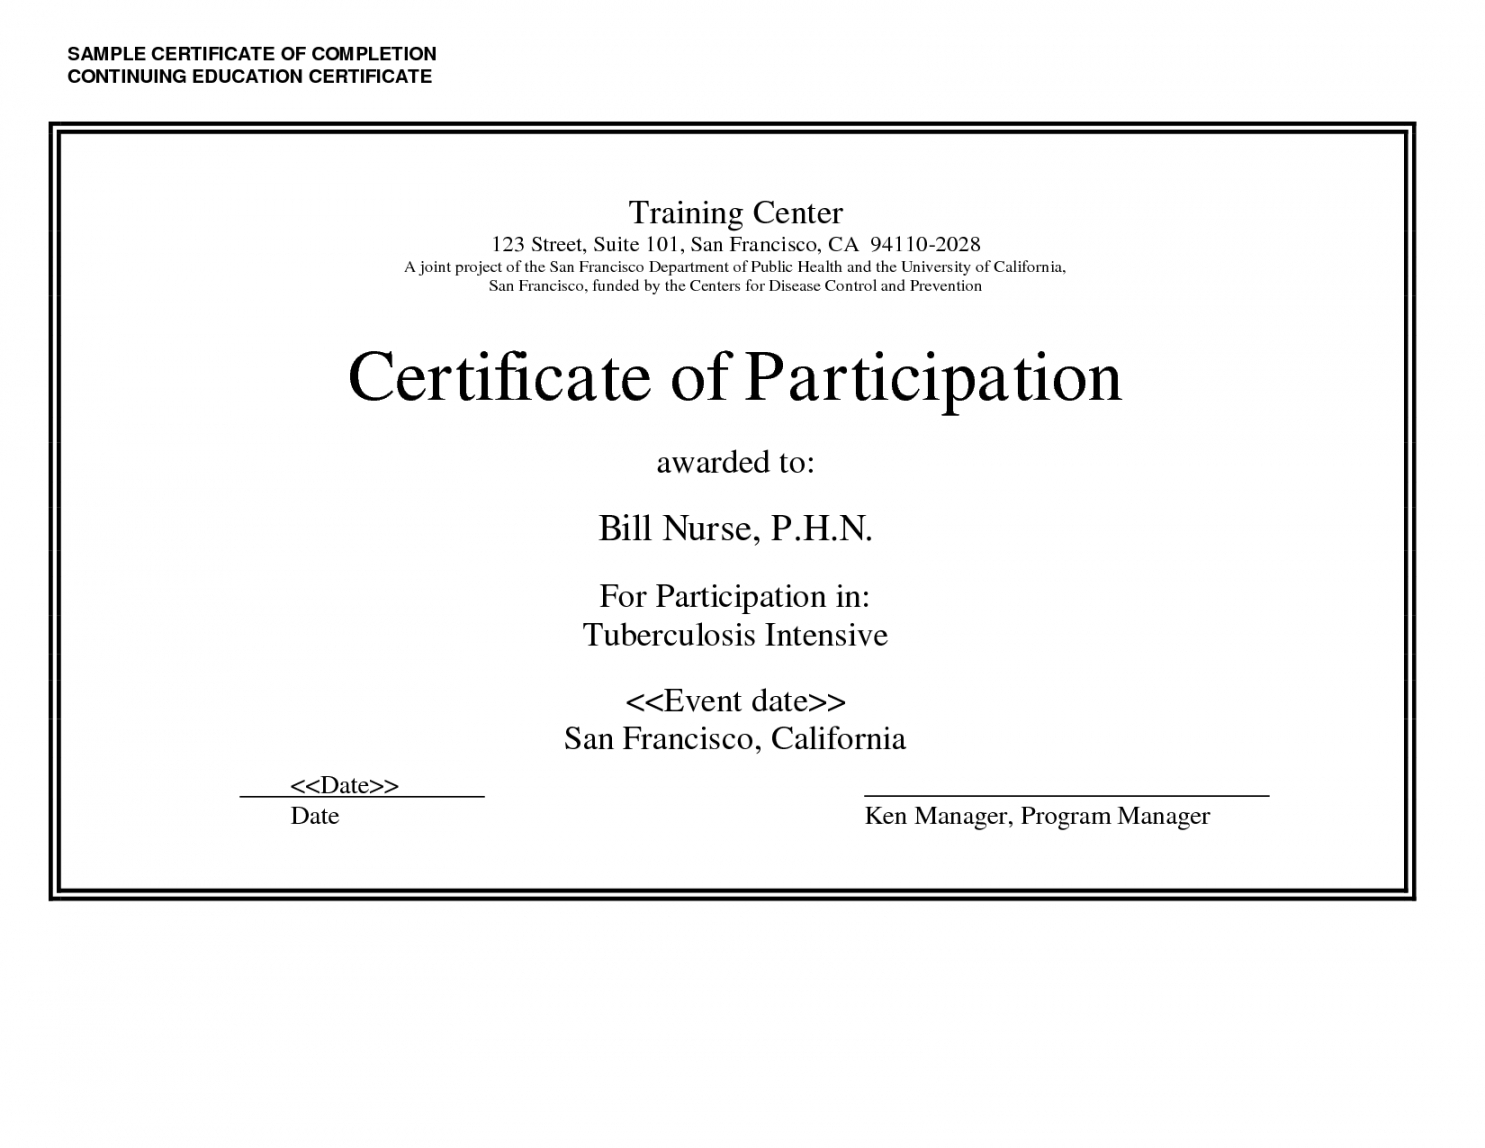 Printable Sample Certificate Of Completion Continuing Education Regarding Continuing Education Certificate Template